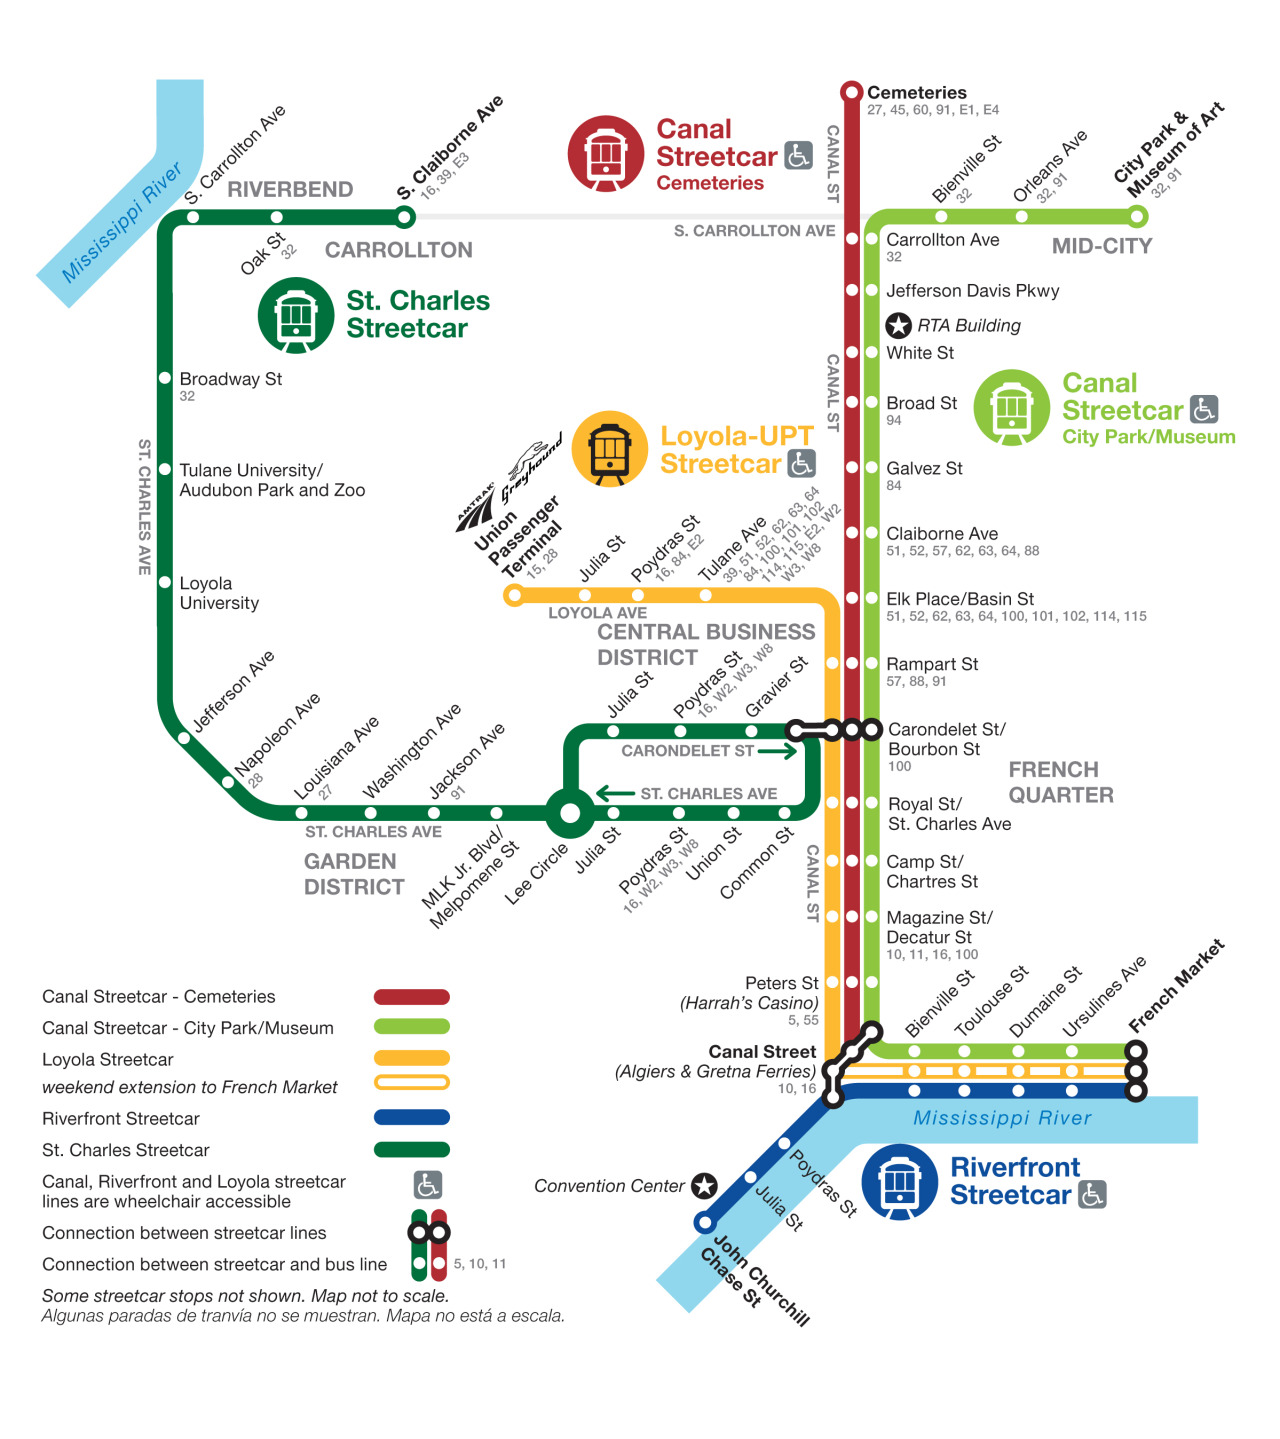 Official Map: Streetcar Network, New Orleans Brought to my attention by Transit Maps follower, Alex Marshall, this is the latest New Orleans streetcar map, updated after the opening of the new Loyola Avenue line in January of this year.  Have we been there? No. One day! What we like: Informationally, it does the job, I guess. It shows the routes and connections to other services in a neat, easily understandable way. It's just so… dull. What we don't like: The very best transit maps have a sense of place about them, and one could argue that New Orleans is like no other place on earth. The sheer amount of history represented by the historic streetcars and the unique culture of the city itself should be represented in this map, yet are completely absent. Instead, we're given a bland, generic map that could be from just about anywhere. Quickly looking at a geographical map of the network gives me so many ideas, I may just have to whip something up myself. The smooth curve of the St. Charles Line wrapped in the meandering shape of the Mississippi River could be so beautiful if handled well… Also of note: apparently, the only two points of interest on the entire streetcar network are the Convention Center and NORTA's own building. I never knew New Orleans could be so exciting. Our rating: A hugely wasted opportunity to create something as memorable as the Big Easy itself. Competent but extremely dull. Two-and-a-half stars.  (Source: Official NORTA website)